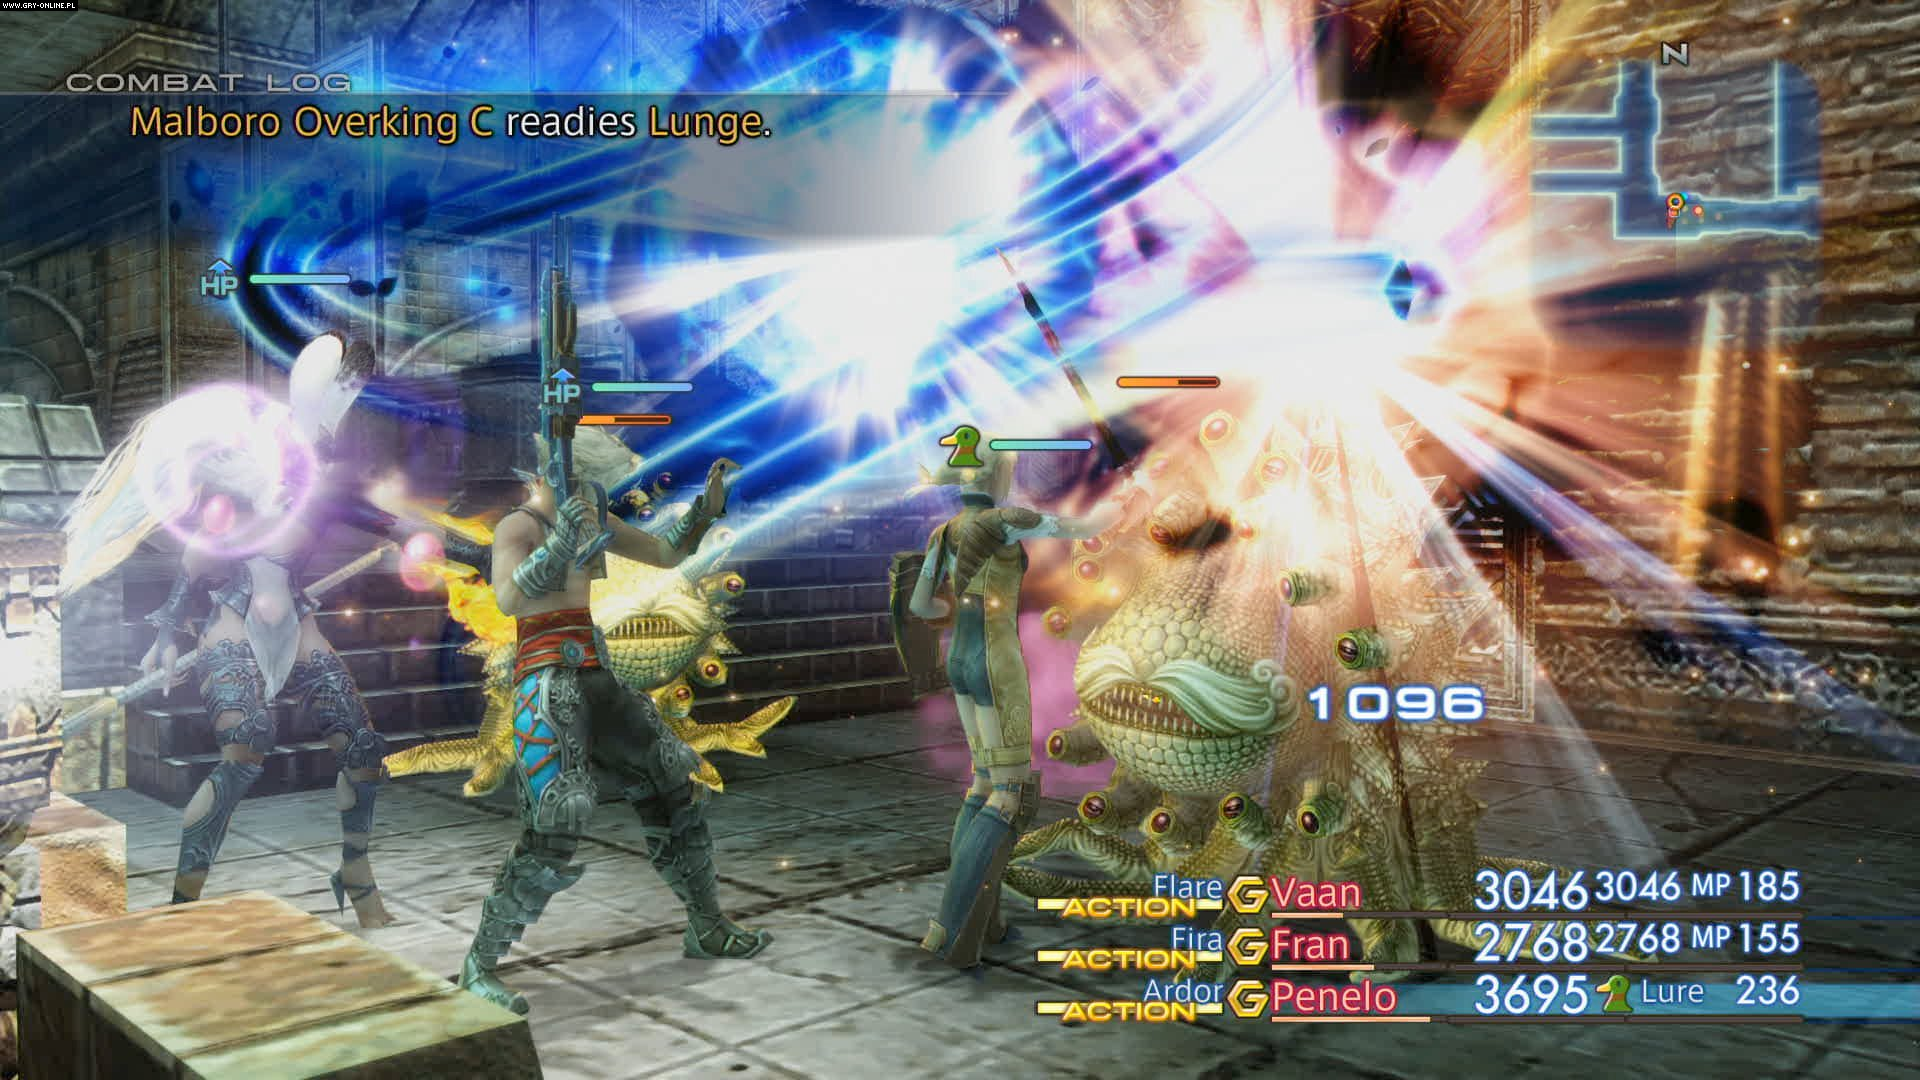 Final Fantasy XII: The Zodiac Age PS4 Gry Screen 50/71, Square-Enix / Eidos